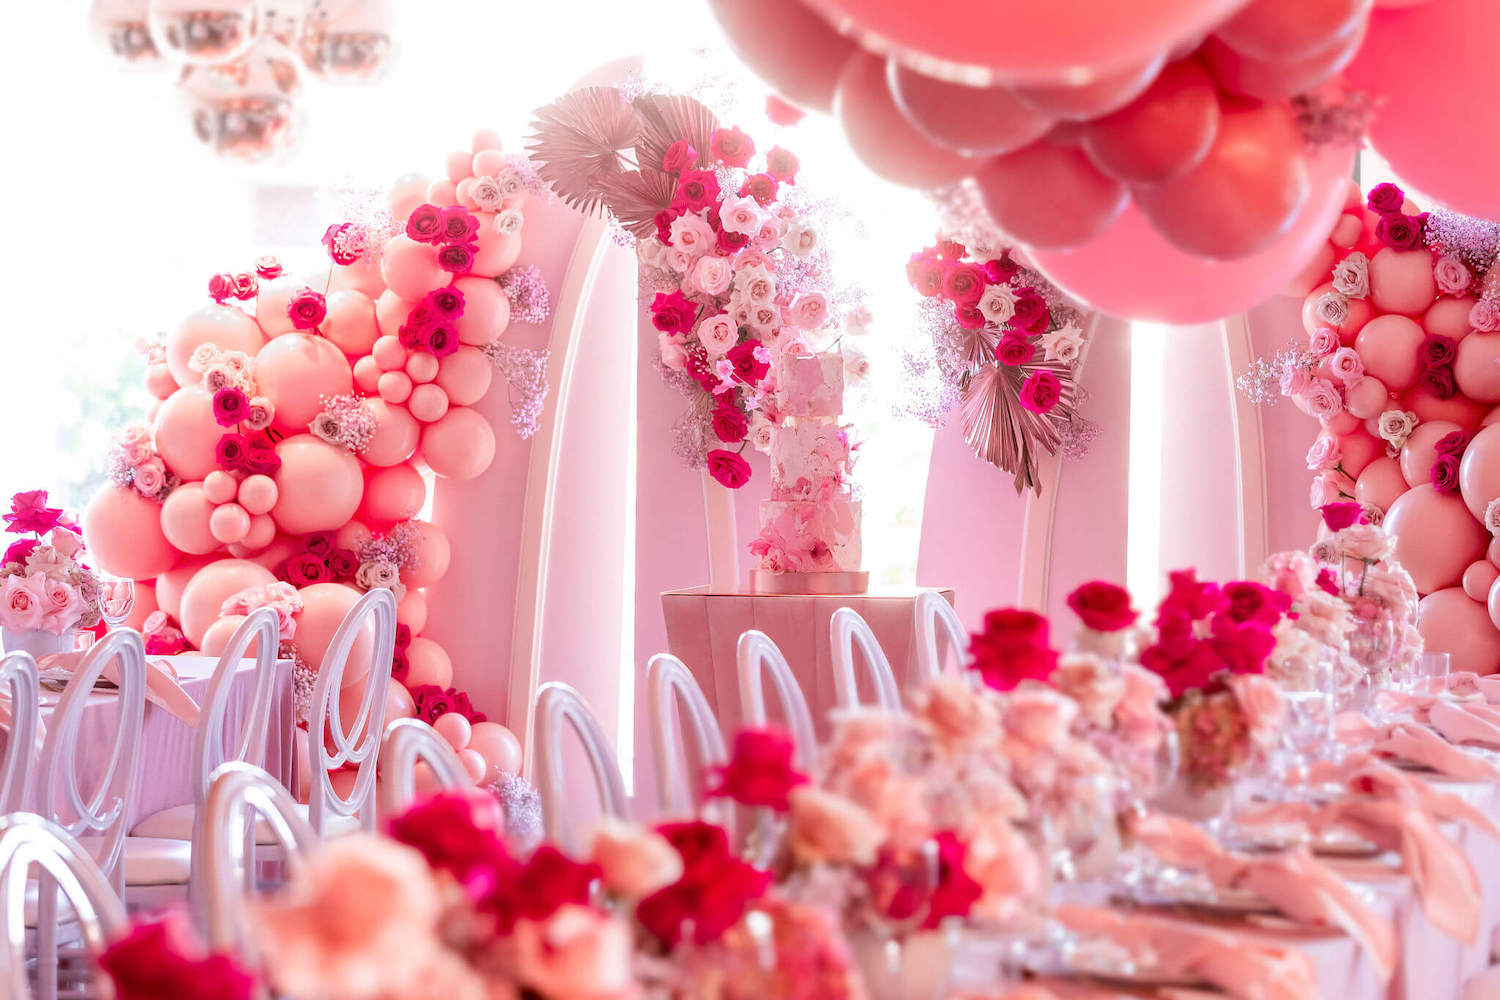 Pink Party Design Inspiration with Epic Balloon Decor - Perfete